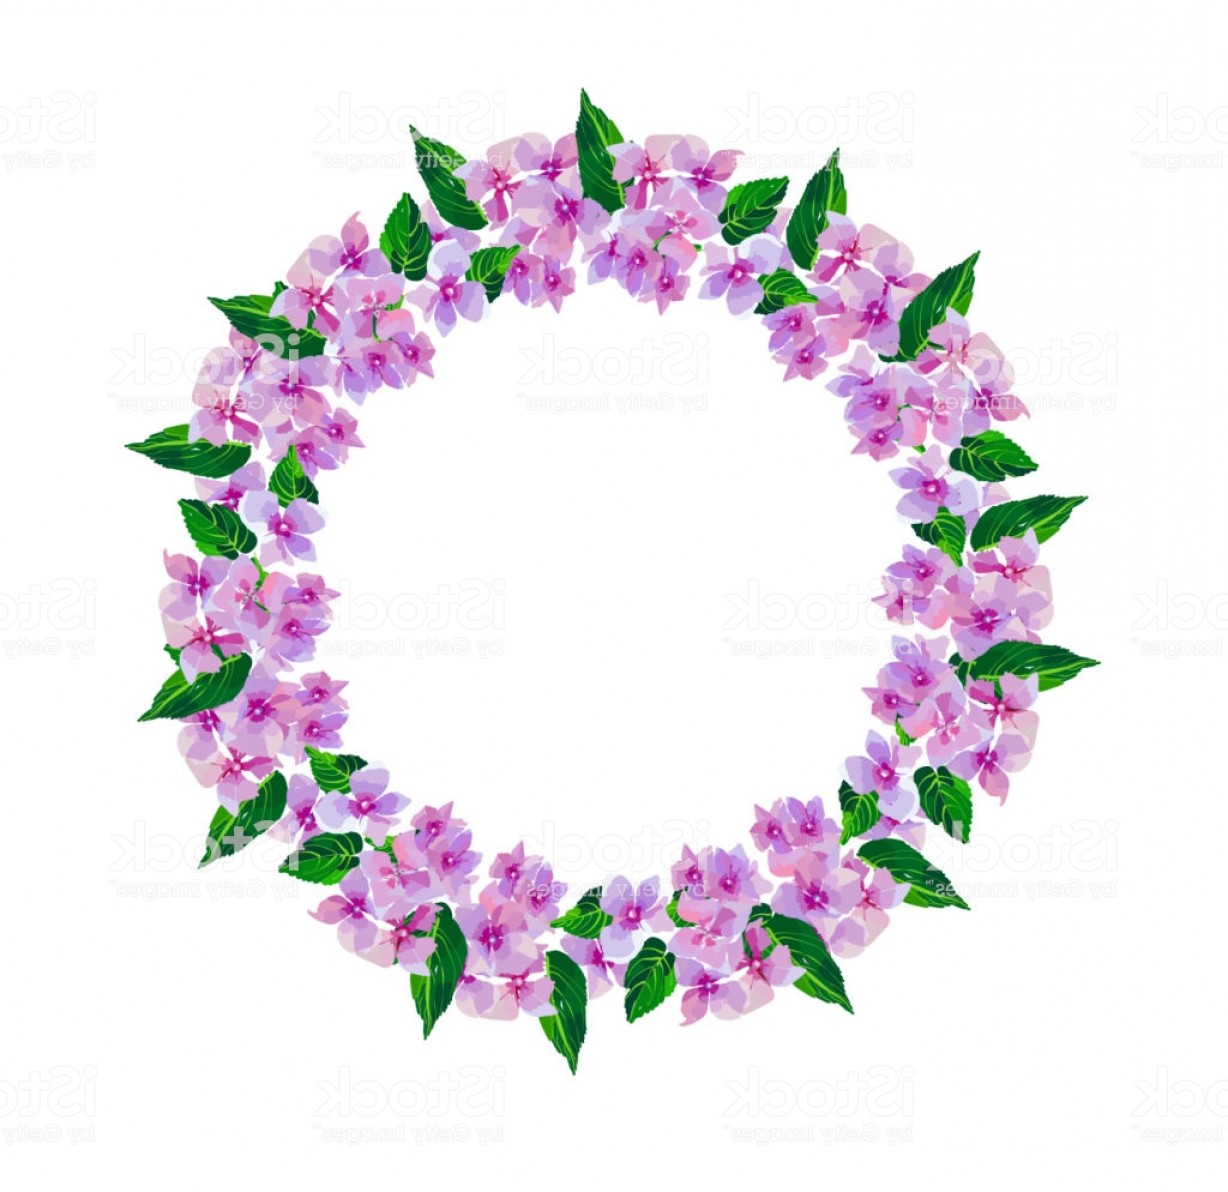 Lilac Wedding Vectors: Lilac Small Flowers Wreath Of Watercolor Flowers Hand Painted Round Frame For Gm